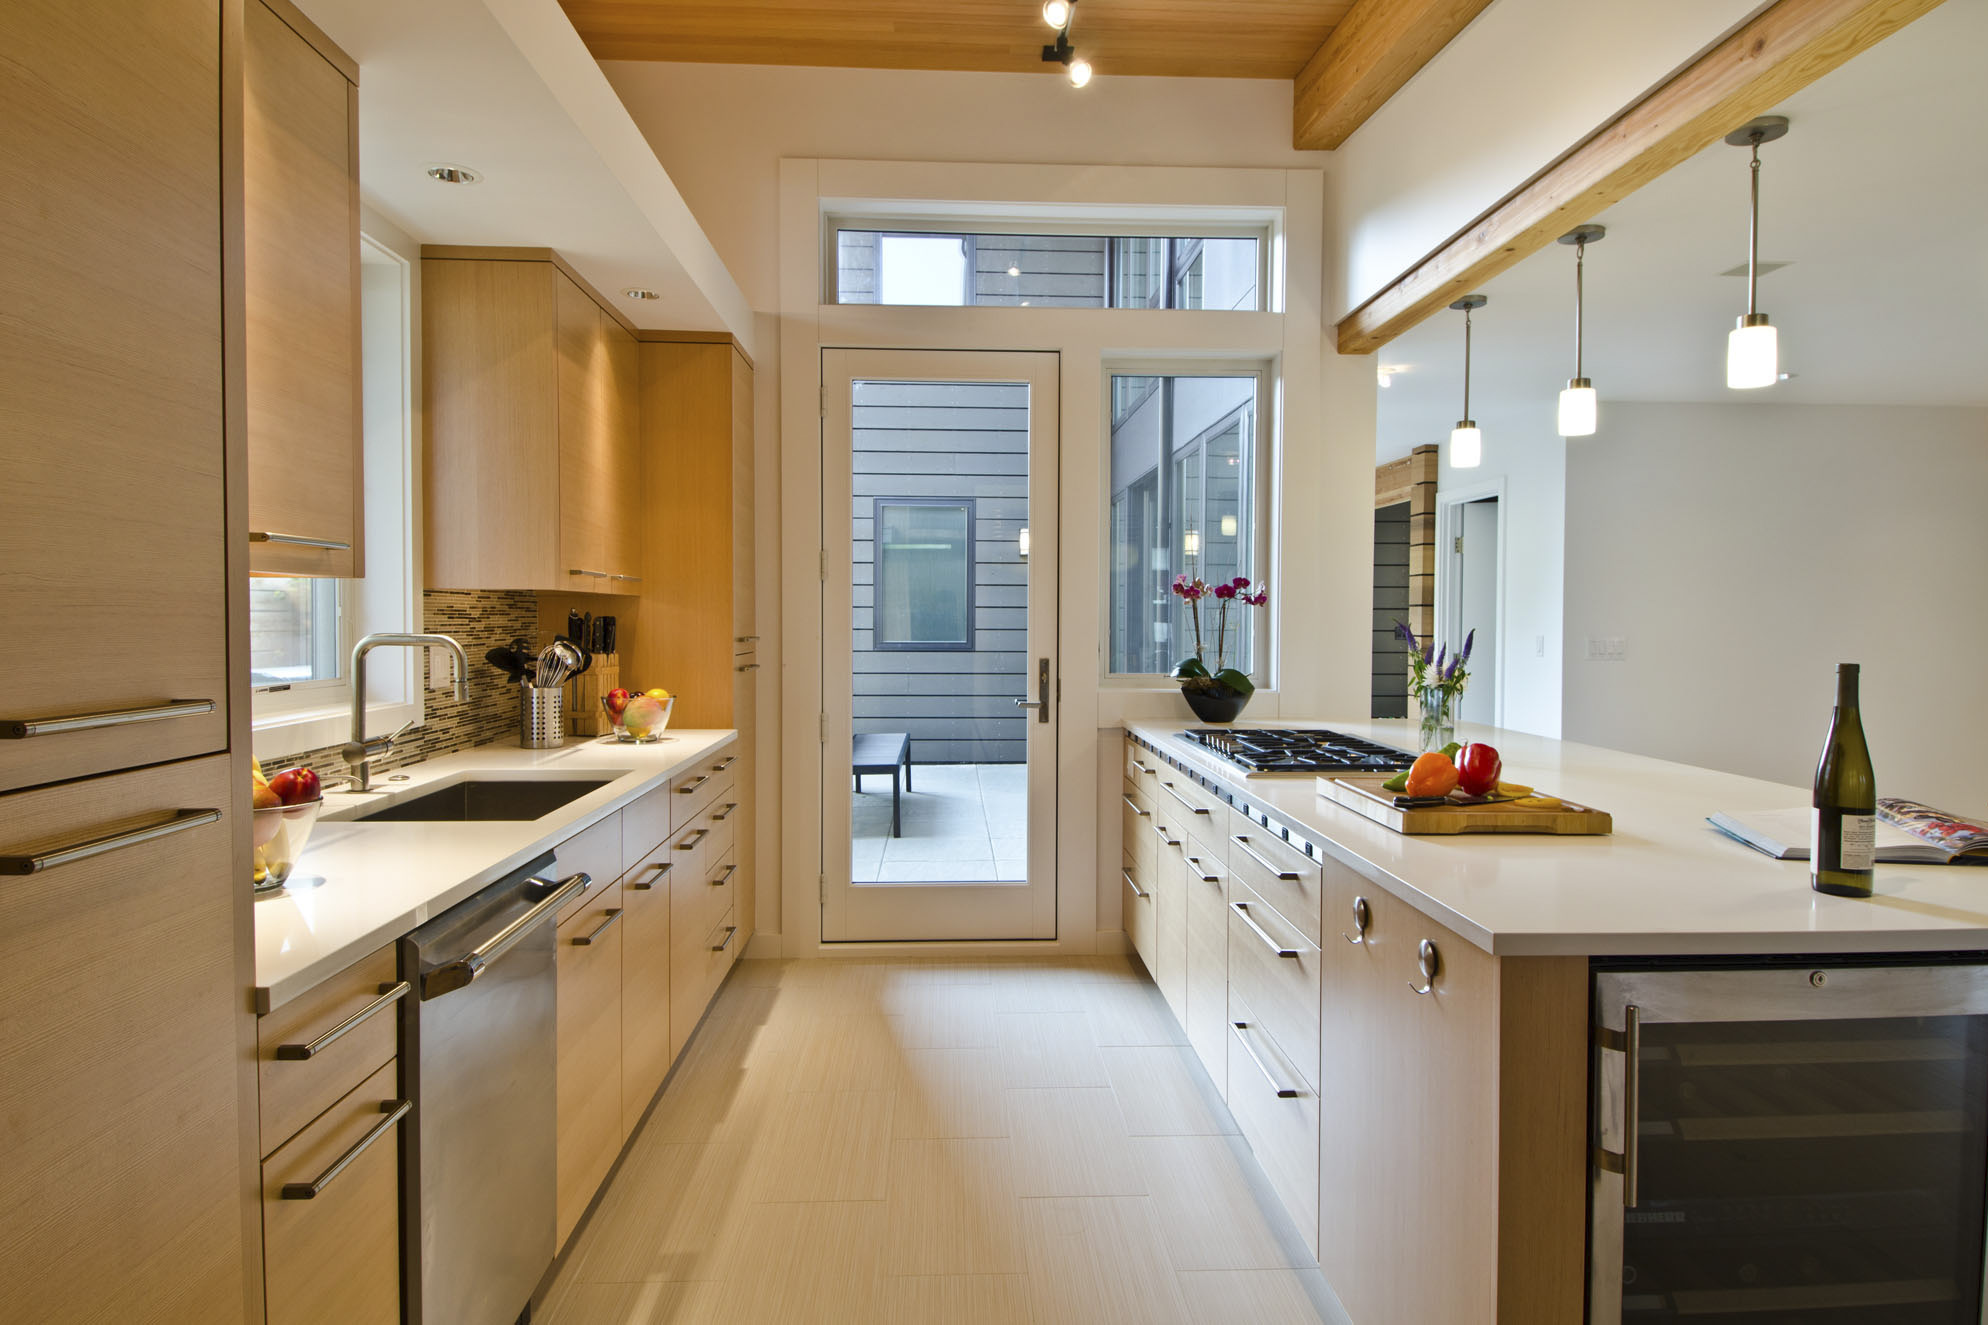 First slide - Modern home galley kitchen with indoor outdoor space and bar seating